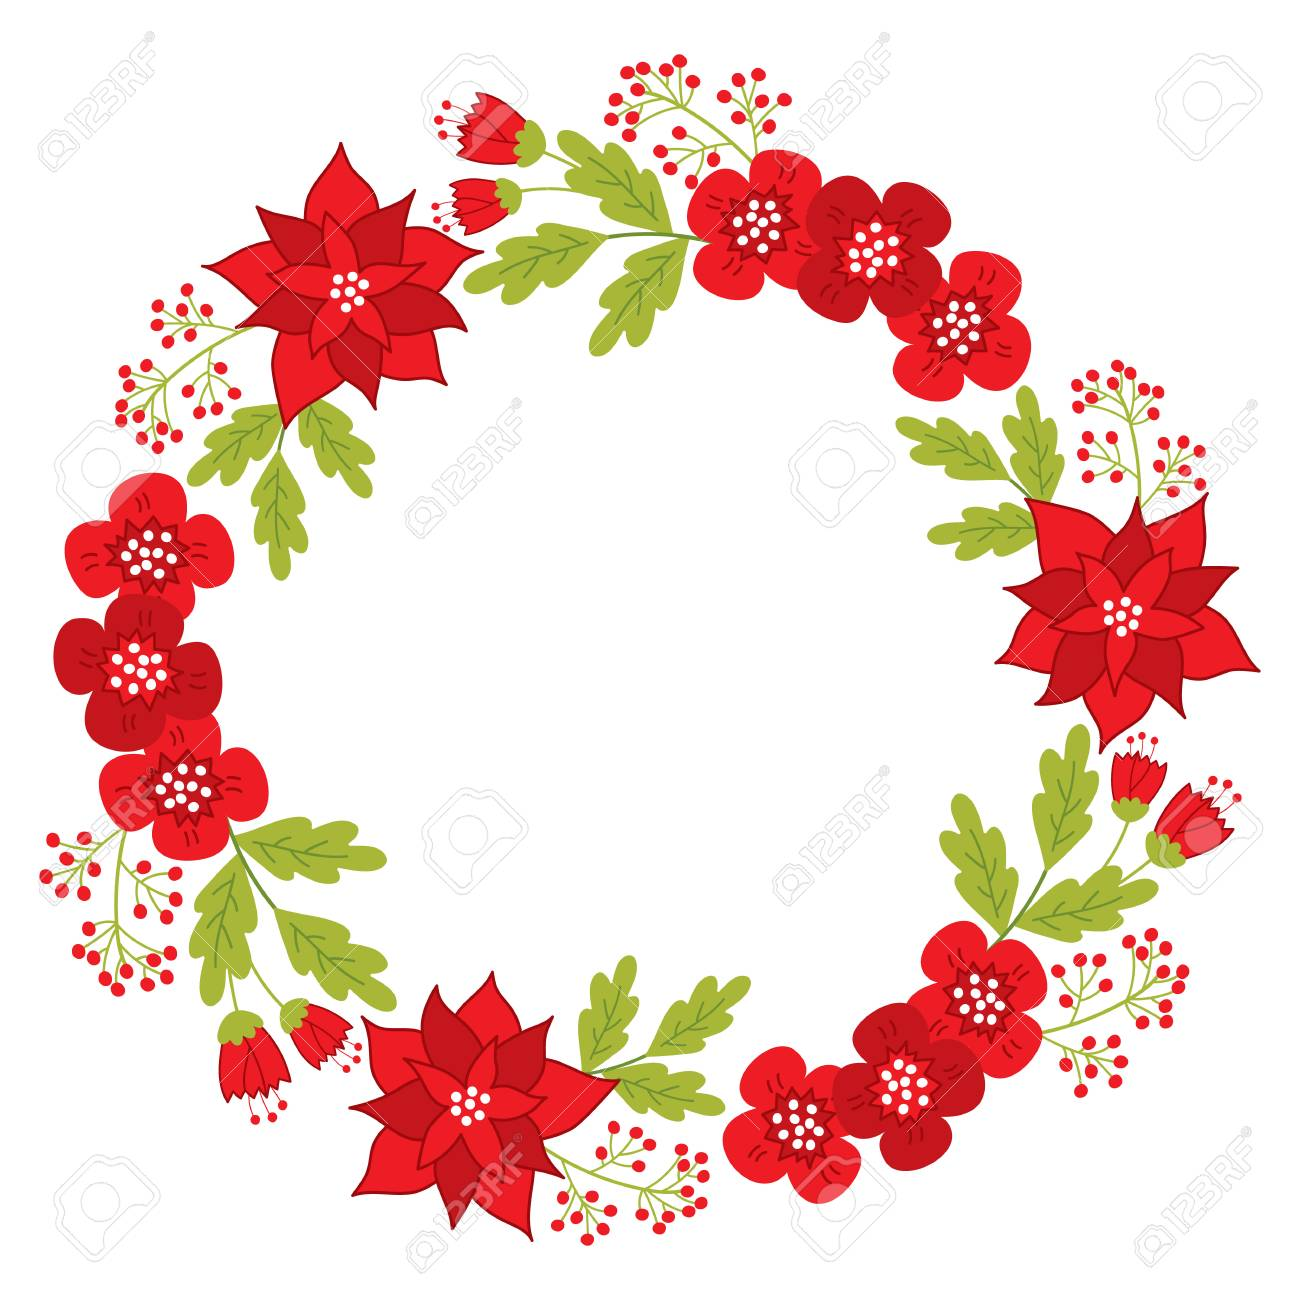 Vector   Vector Christmas Wreath With Red Poinsettia, Red Berries, Flowers  And Leaves. Vector Christmas Wreath. Christmas Floral Wreath Vector  Illustration